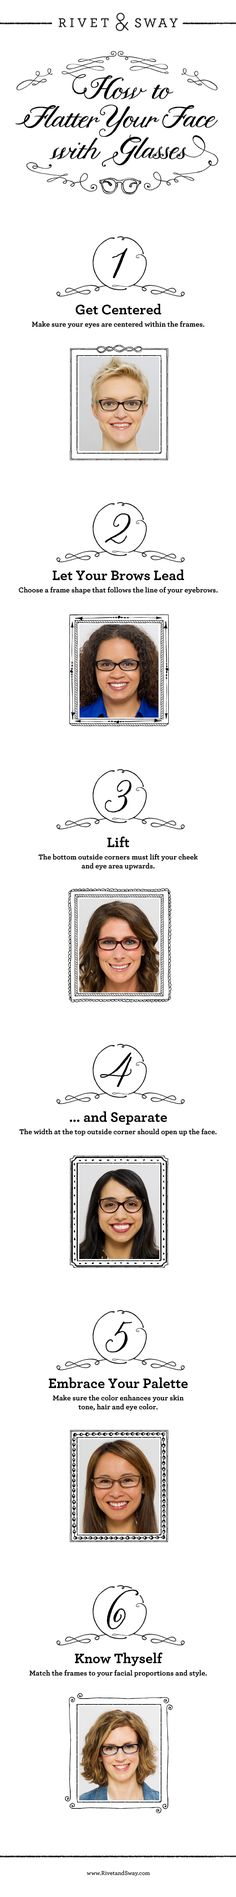 44373c7cd5 How to Flatter Your Face with Glasses - Great designs and great way to buy.